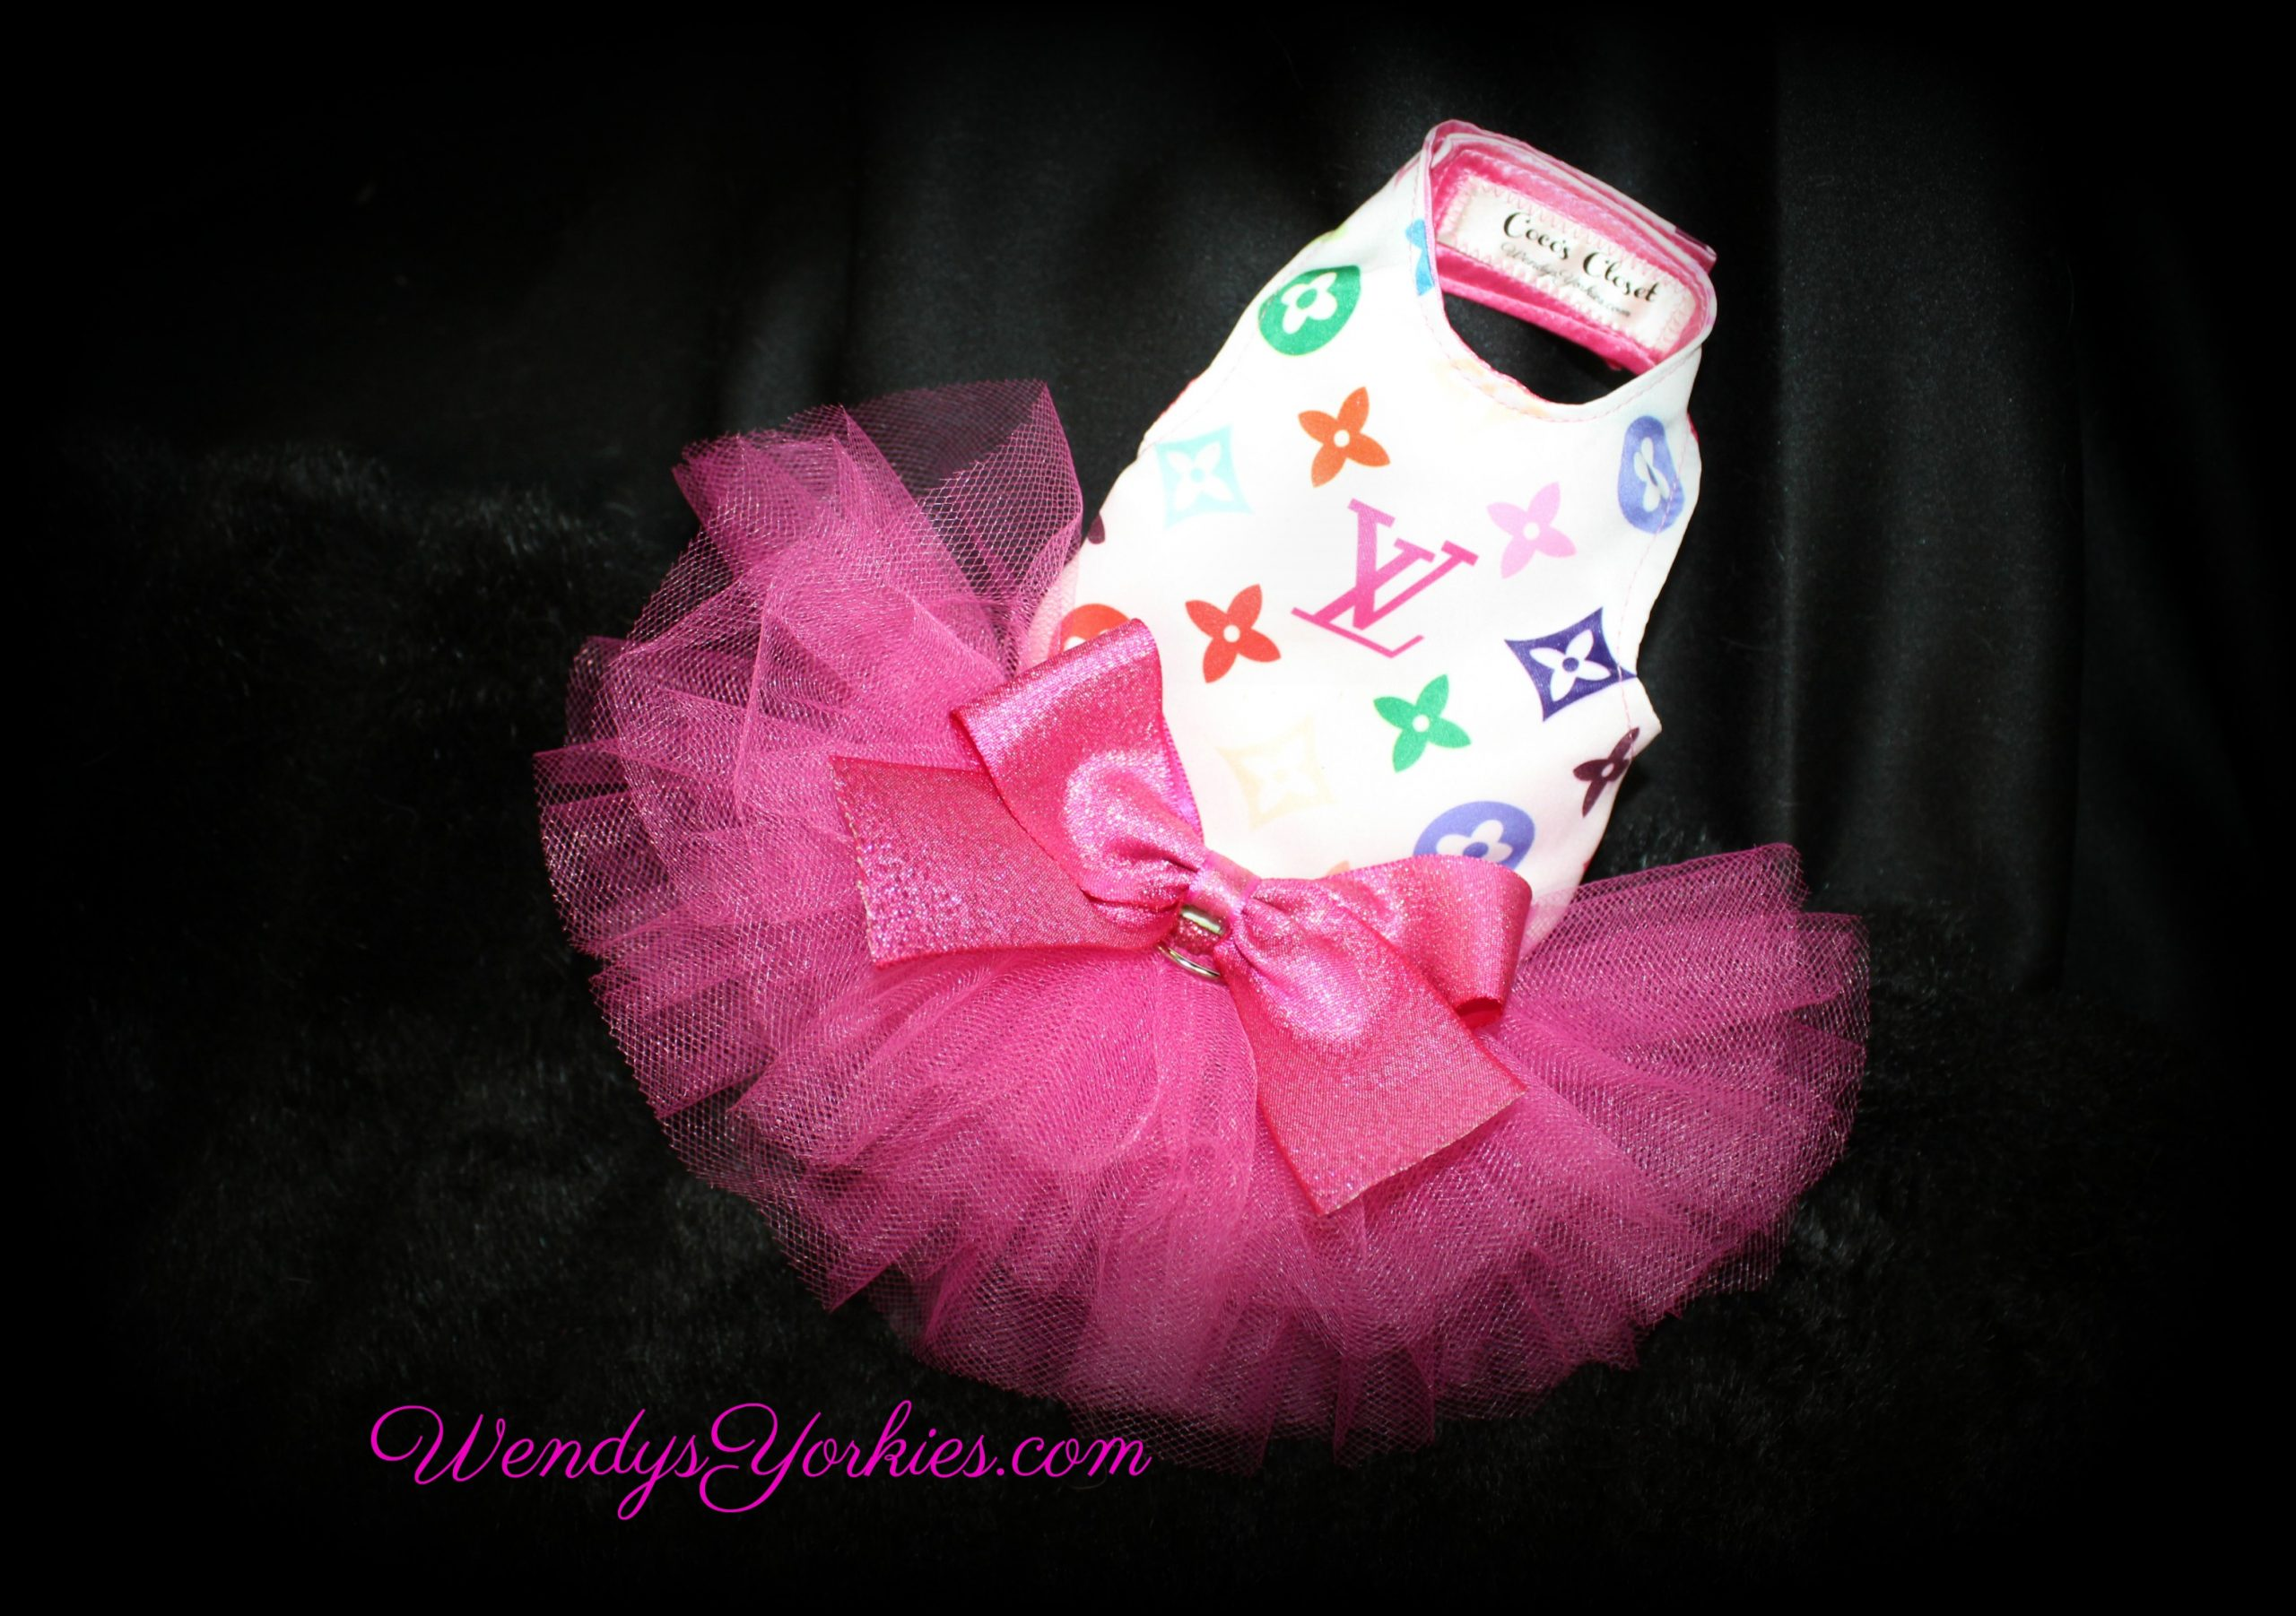 Colorful LV Dog tutu dress, WendysYorkies.com